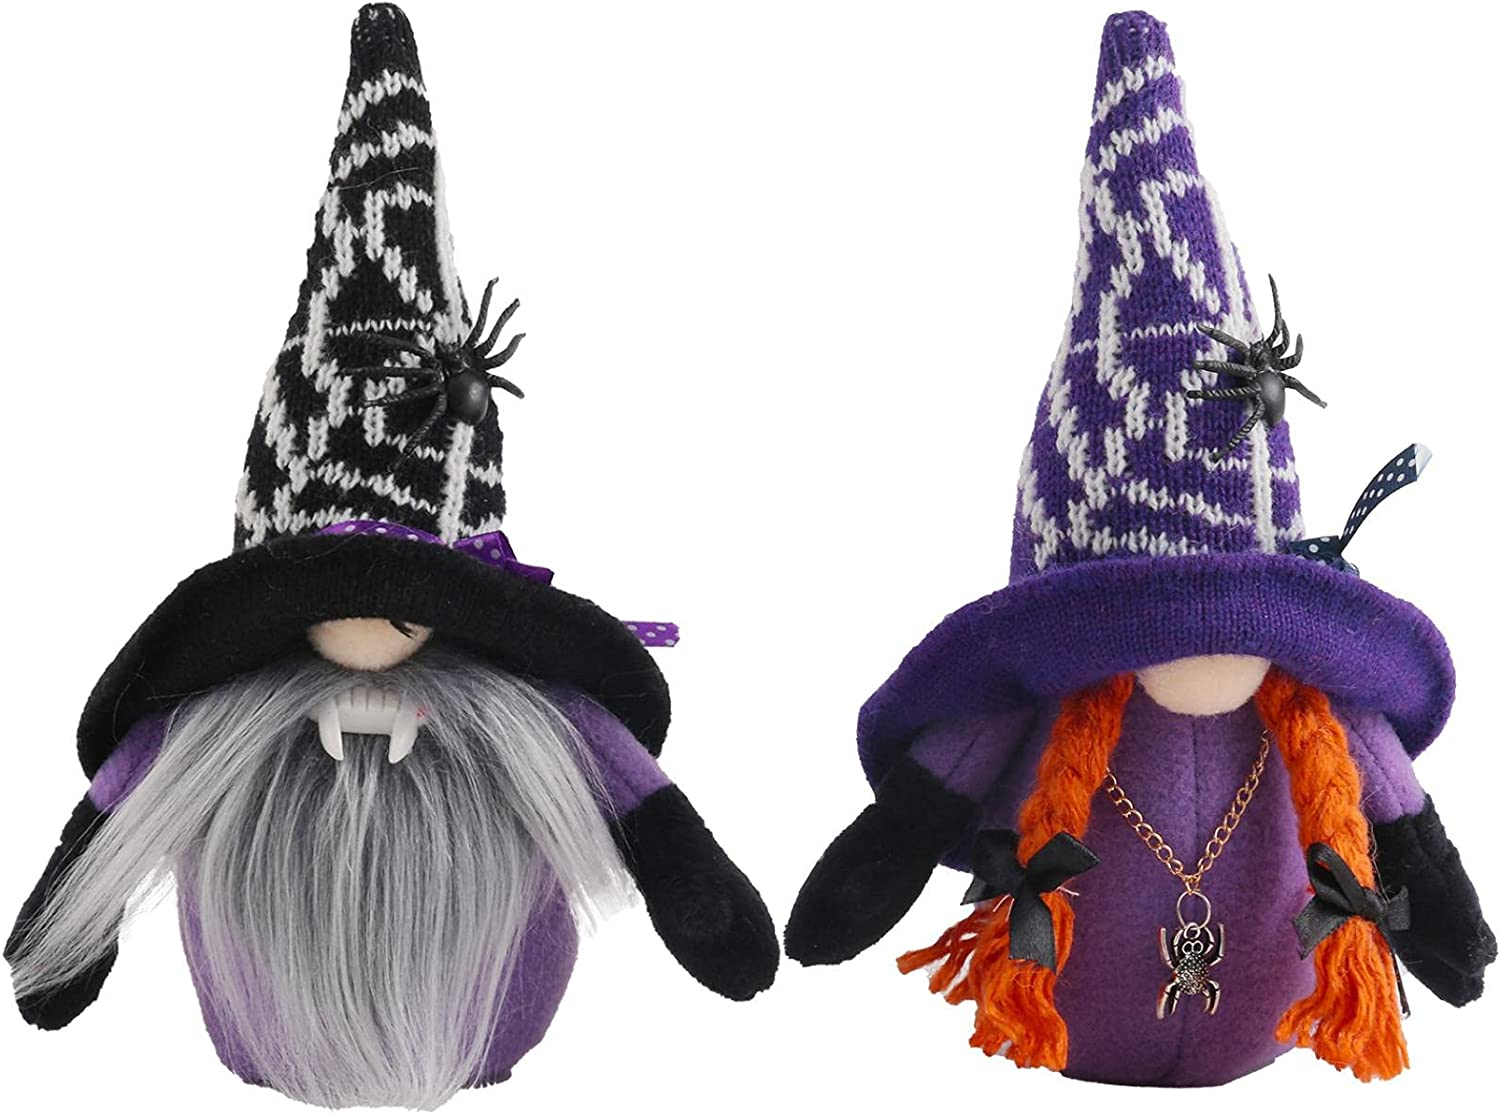 Halloween Witch Wizard Gnome Decorations Pumpkin Gnomes Fall Gno Overseas parallel import regular Outlet ☆ Free Shipping item